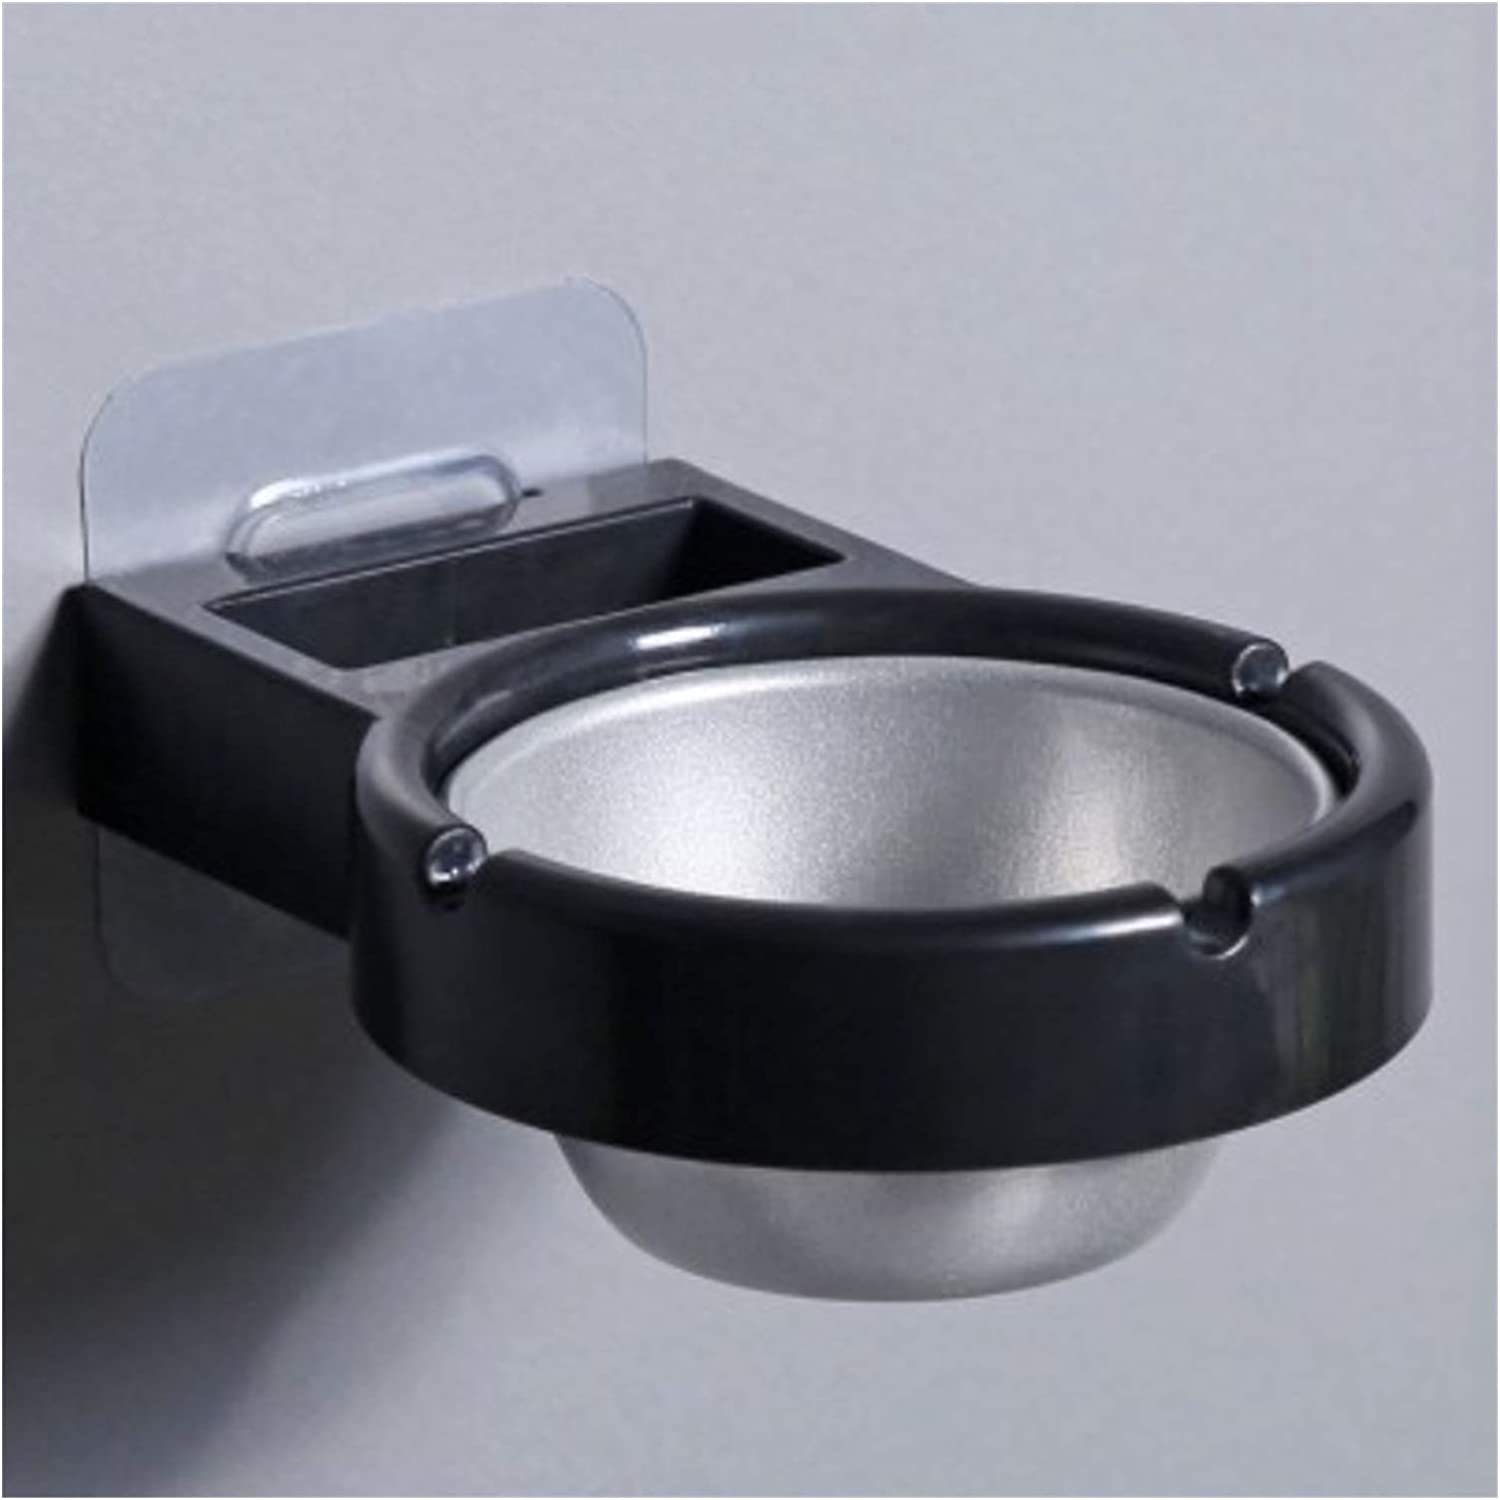 TEAYASON Abs Ashtray Creative Ranking TOP14 Smoking Stainless Steel L Ash Challenge the lowest price of Japan Tray